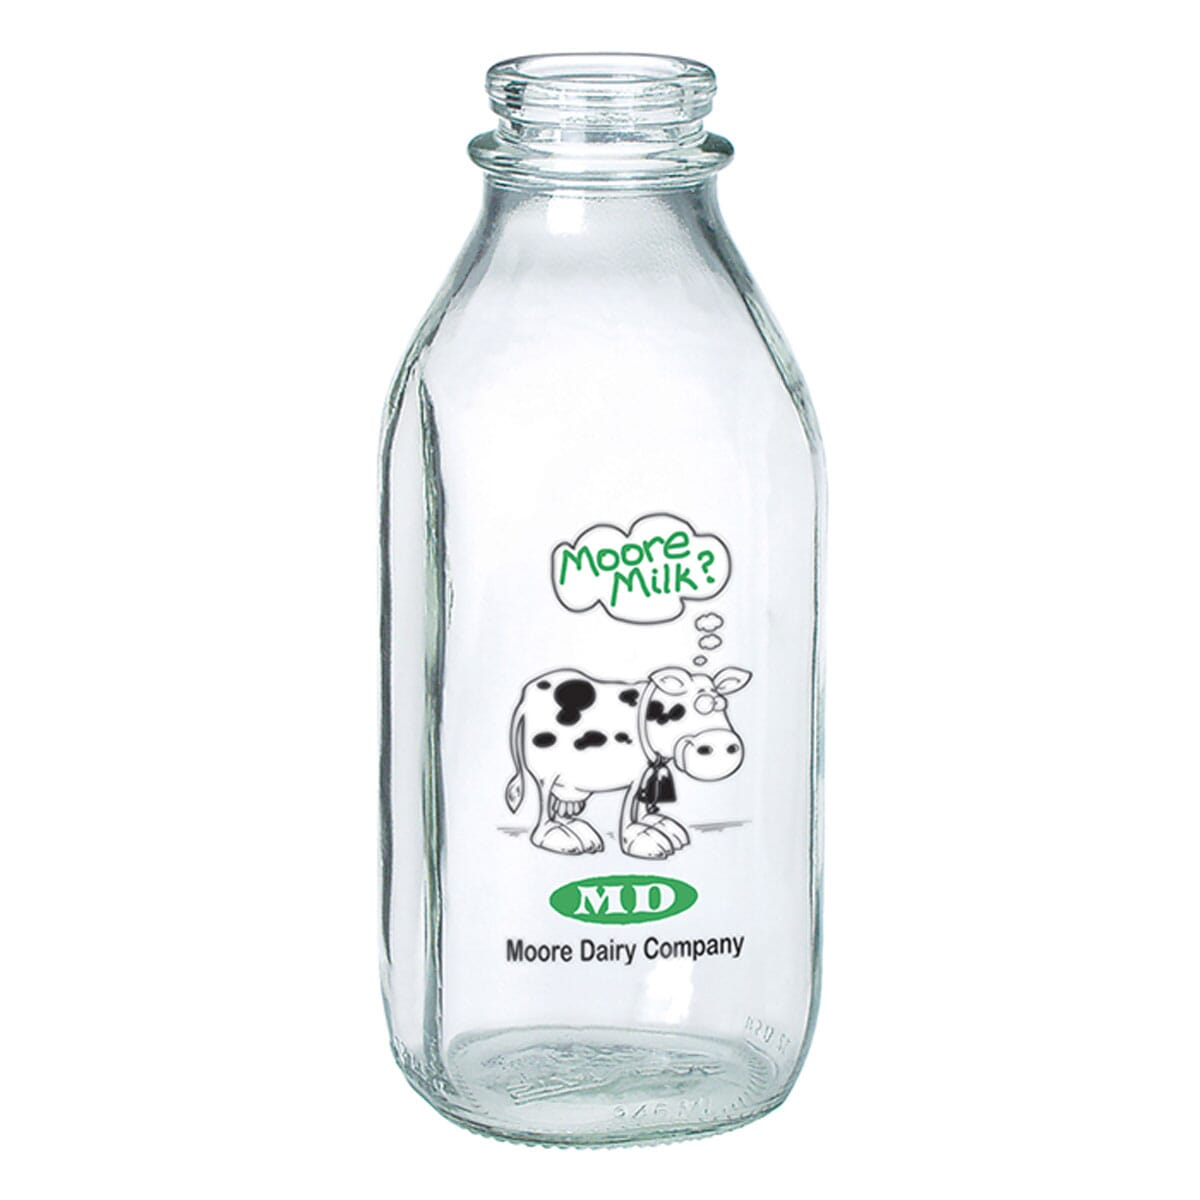 recyclable glass vintage style milk bottle